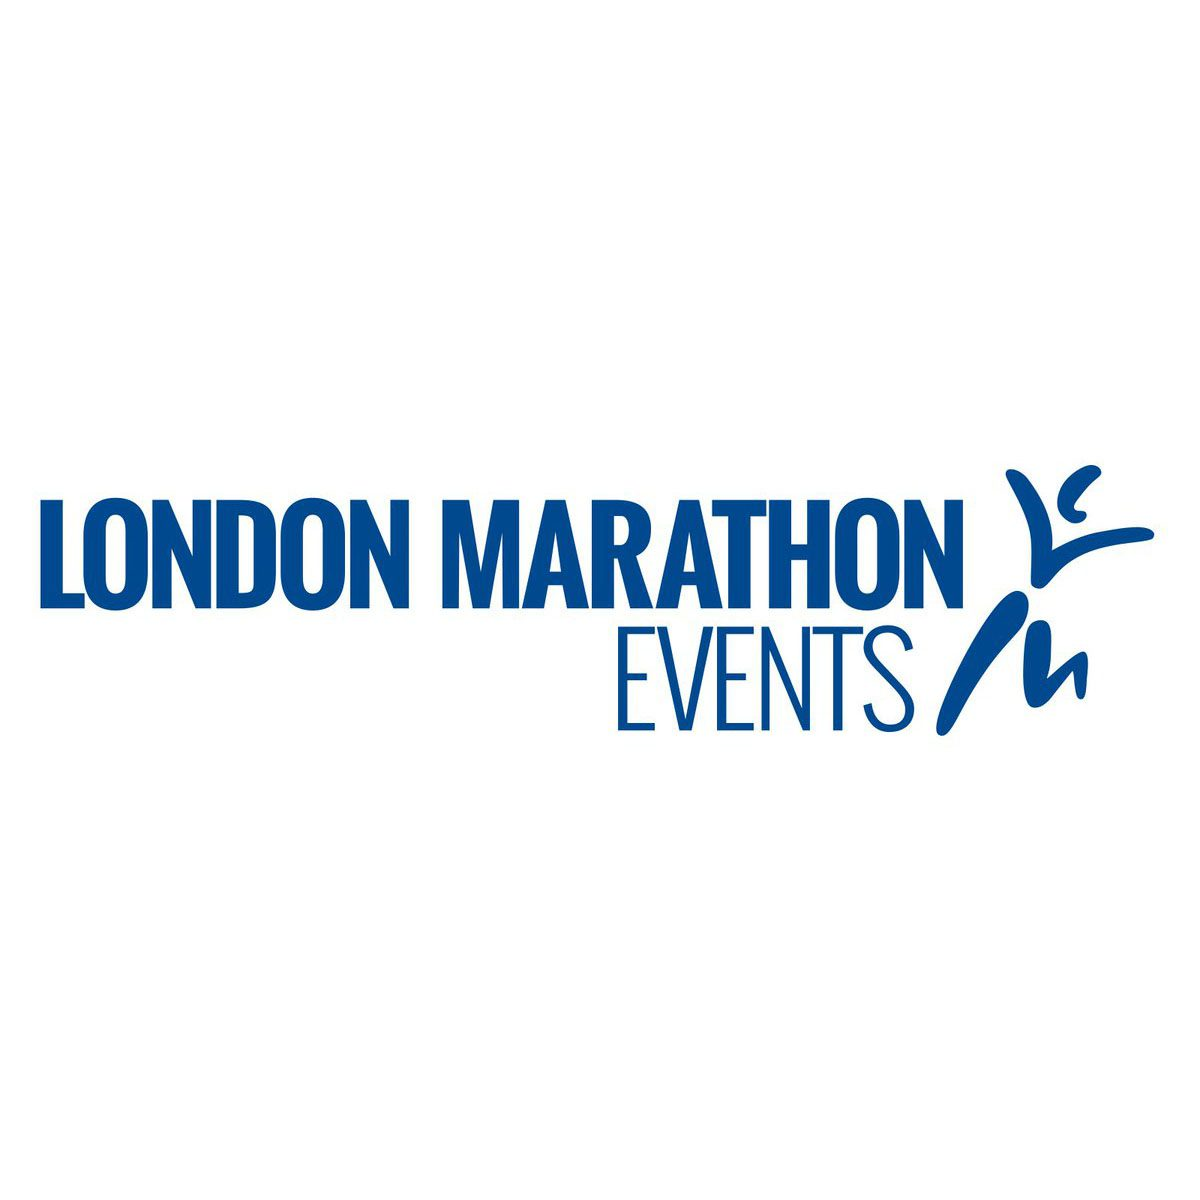 London Marathon Events Logo